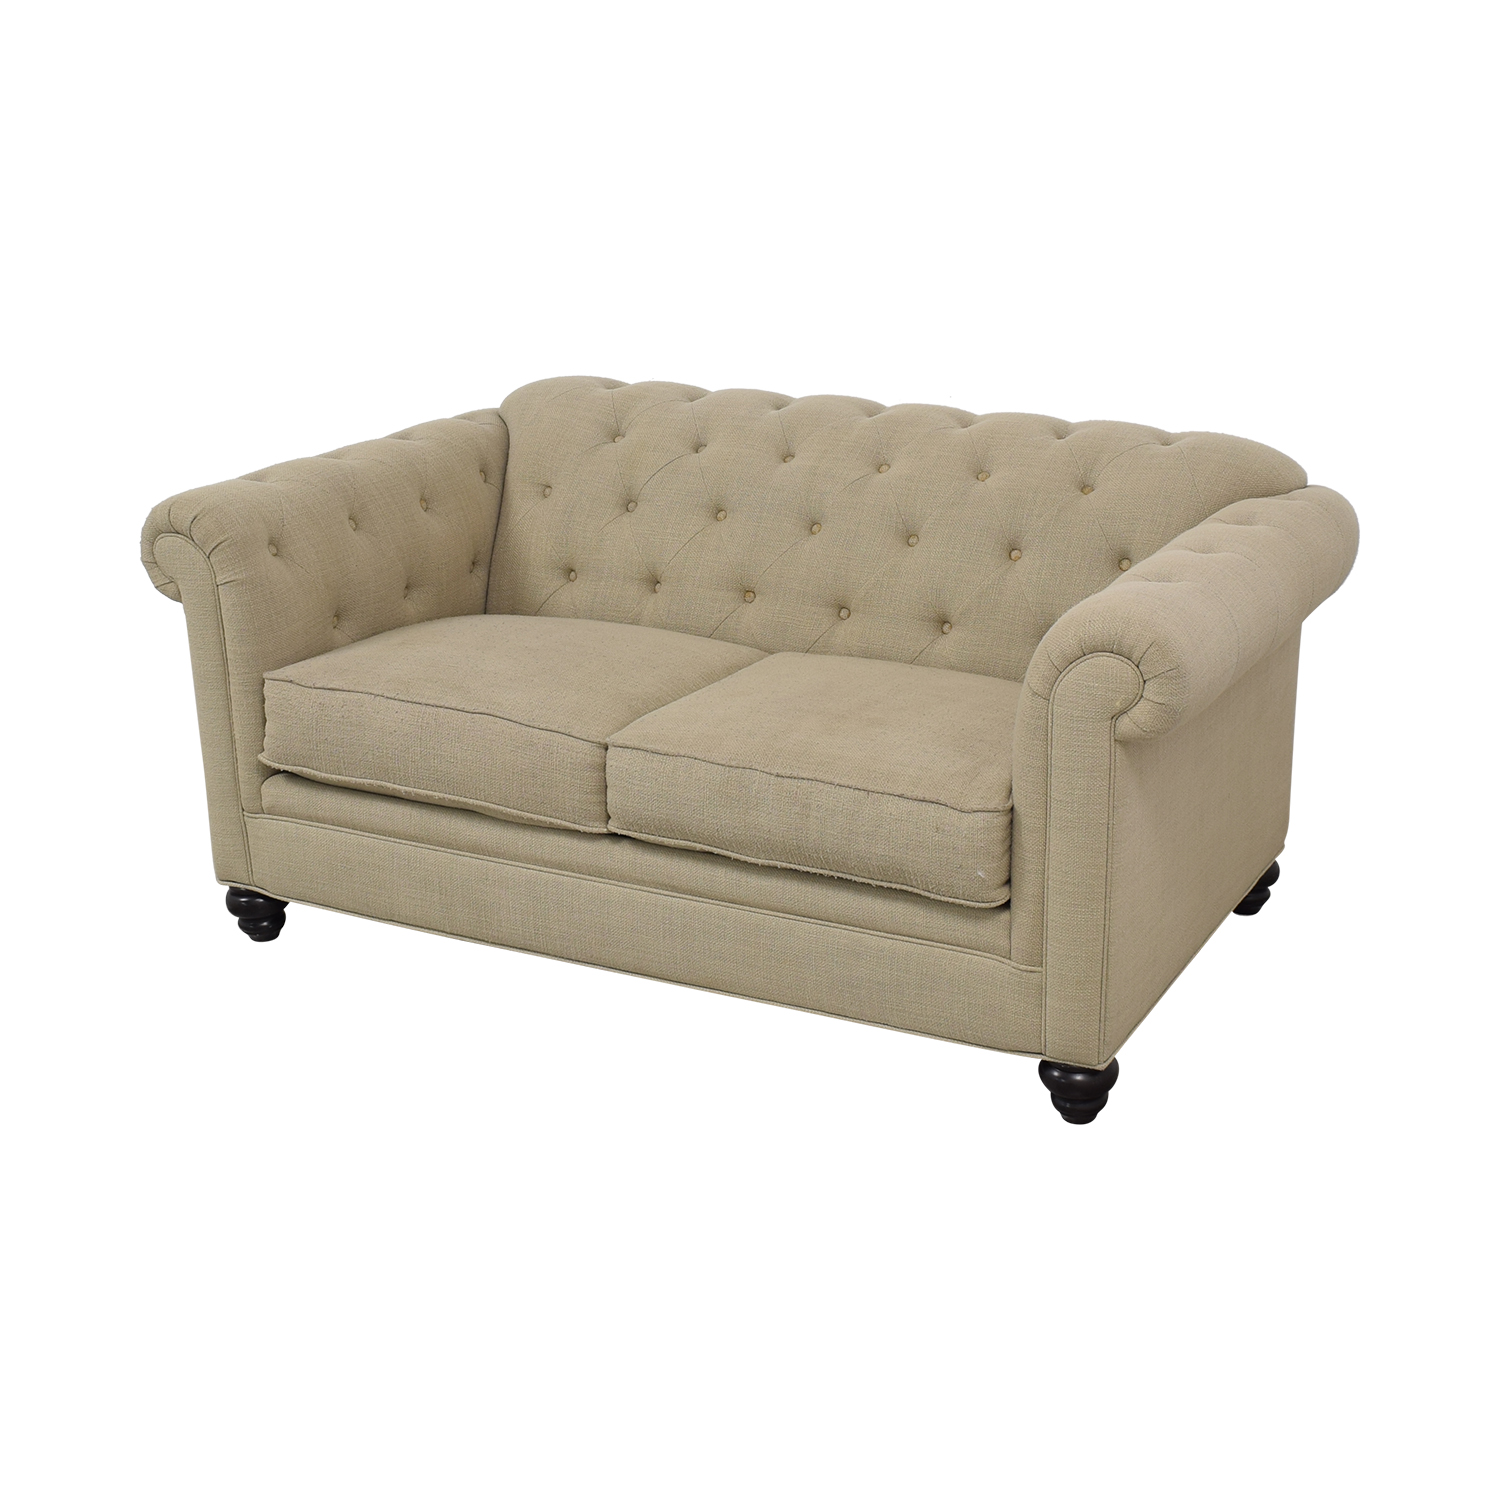 Jonathan Louis Cambridge Loveseat